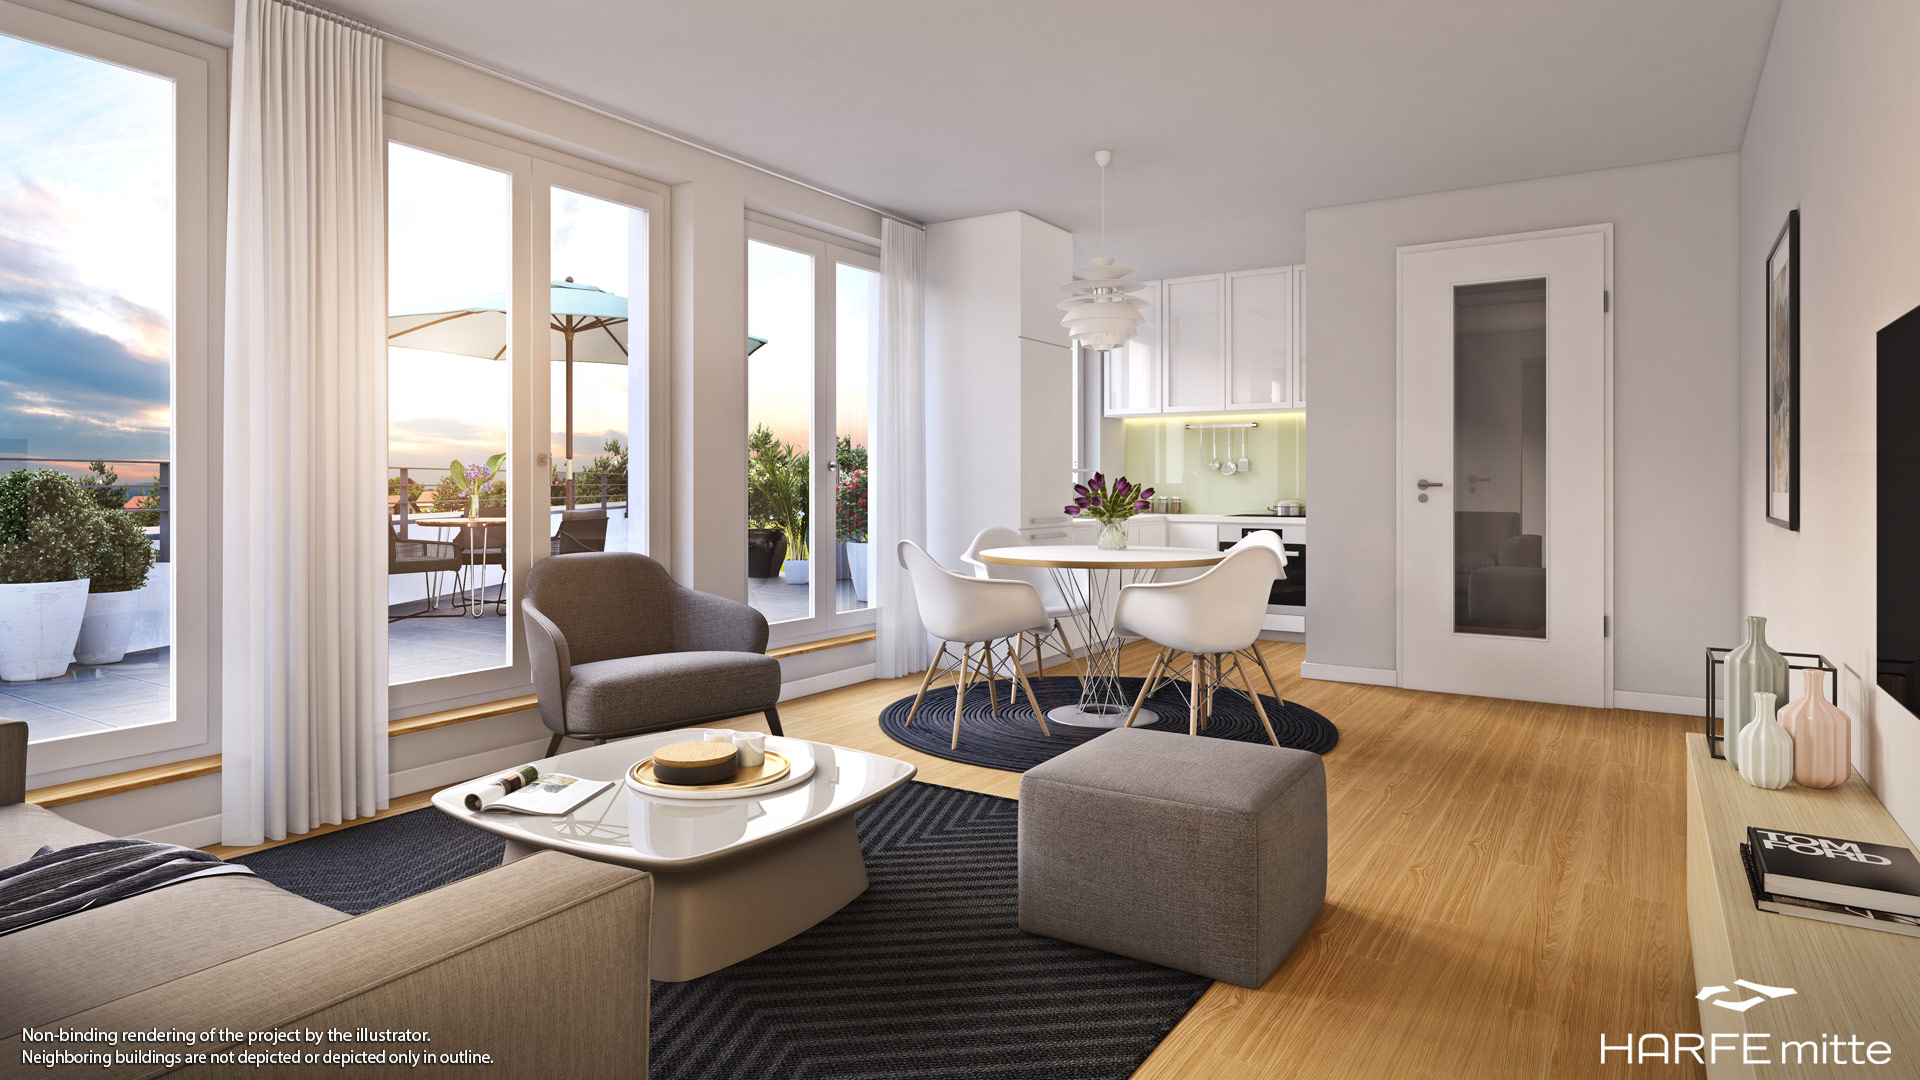 Property HARFE mitte - example illustration living room 2